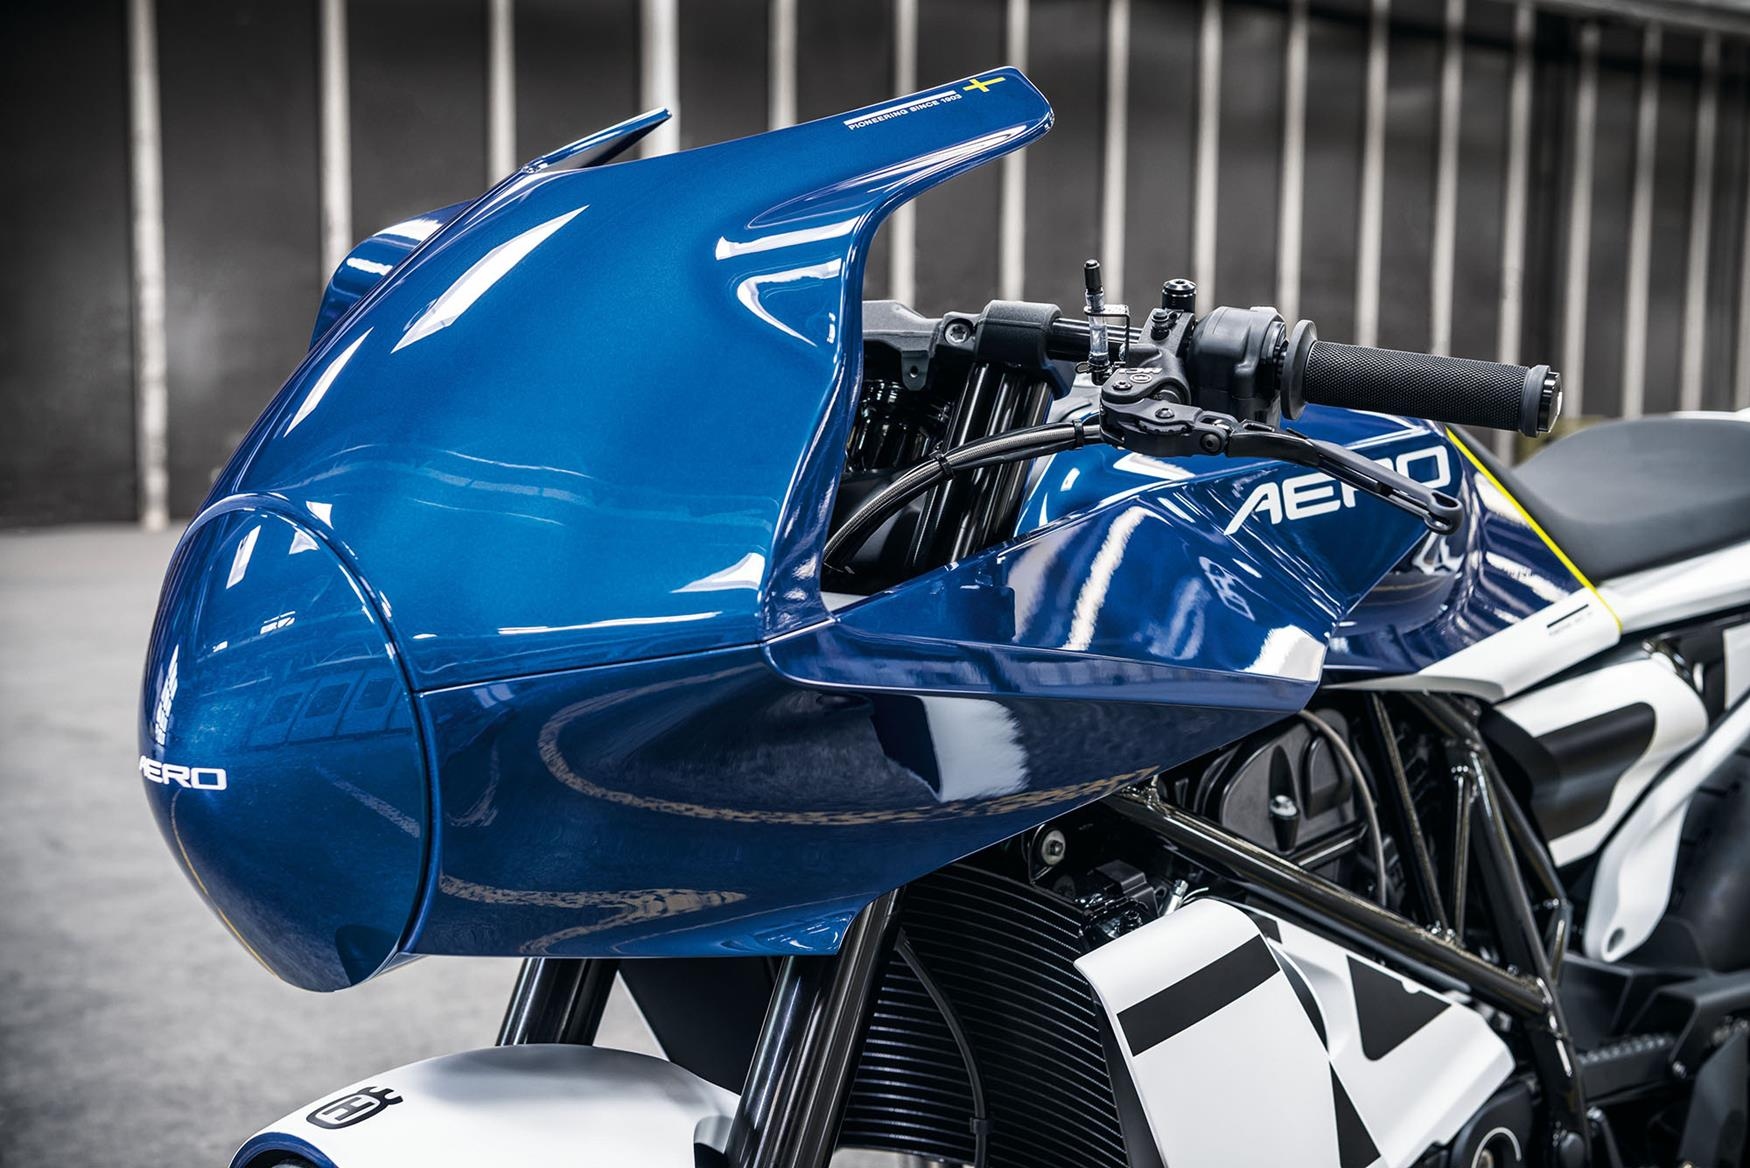 The Aero's fairing houses a smart TFT dash